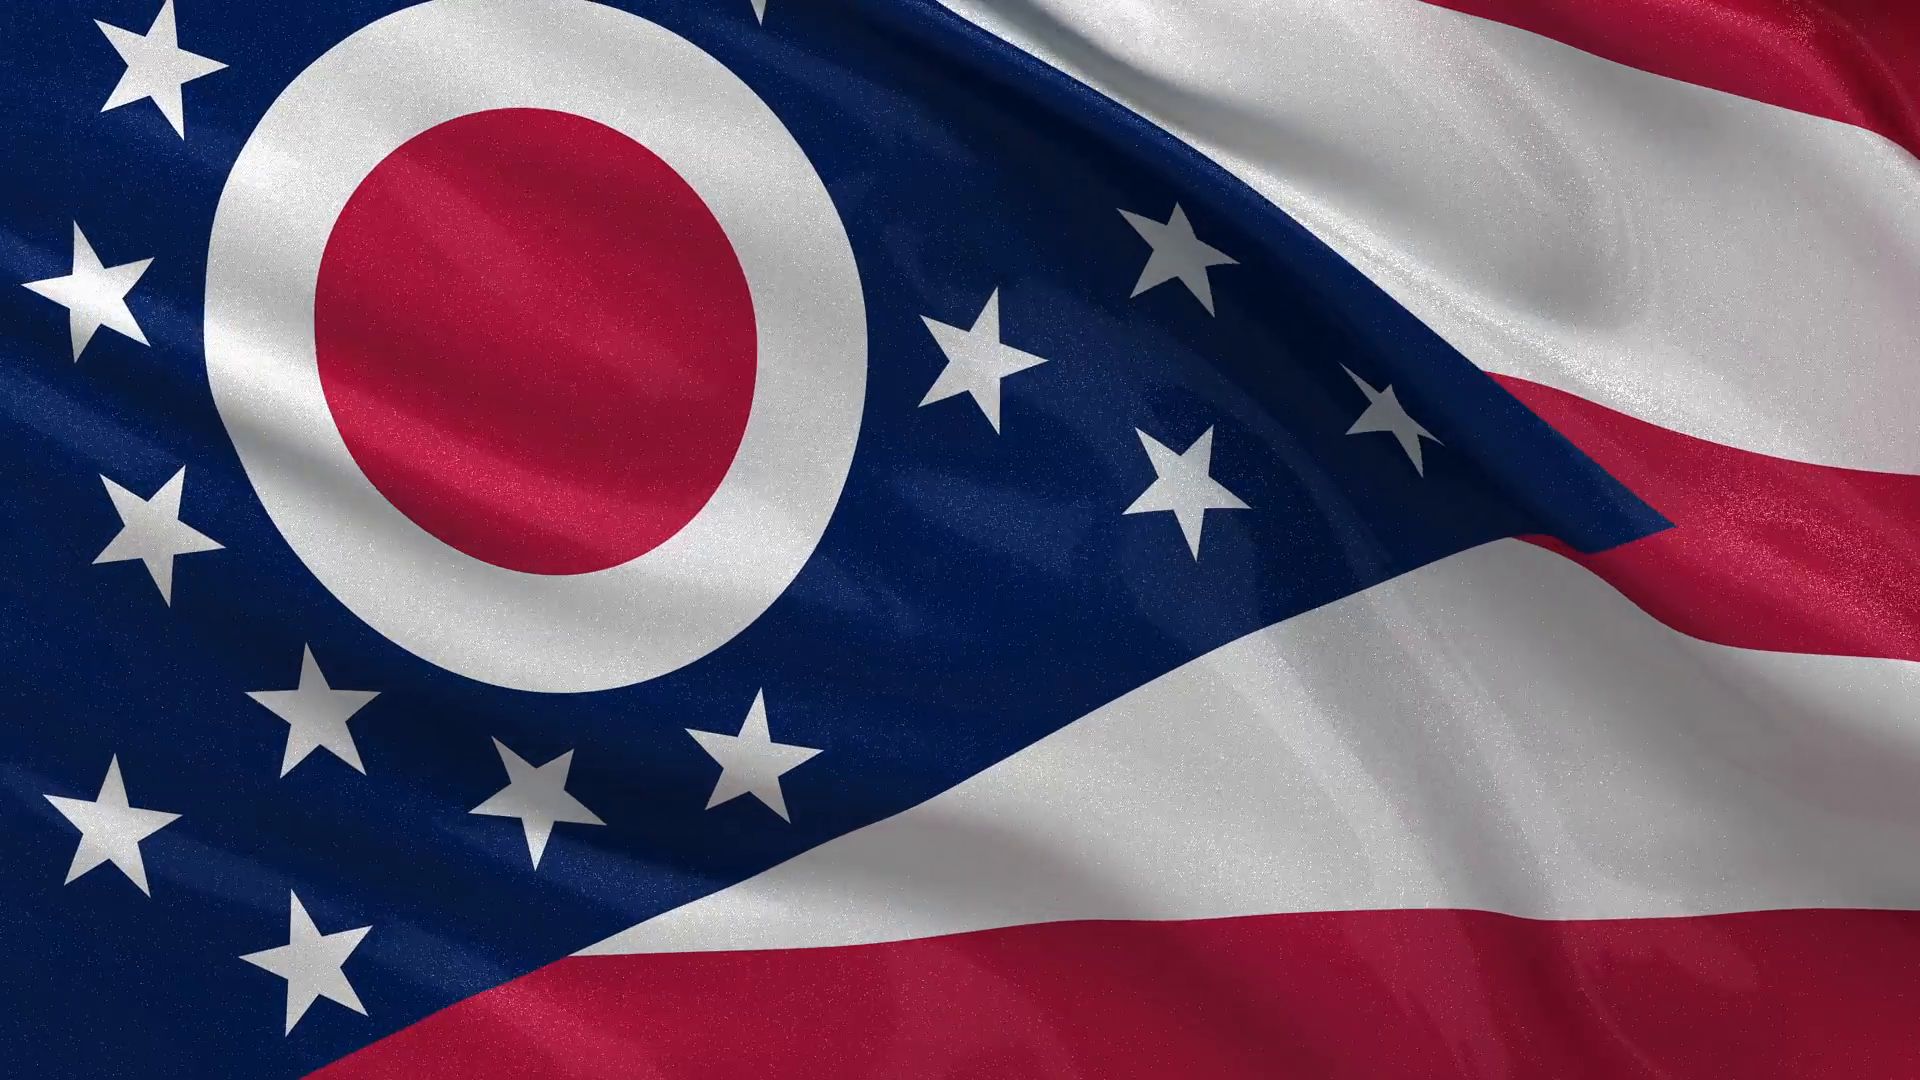 The flag of Ohio State